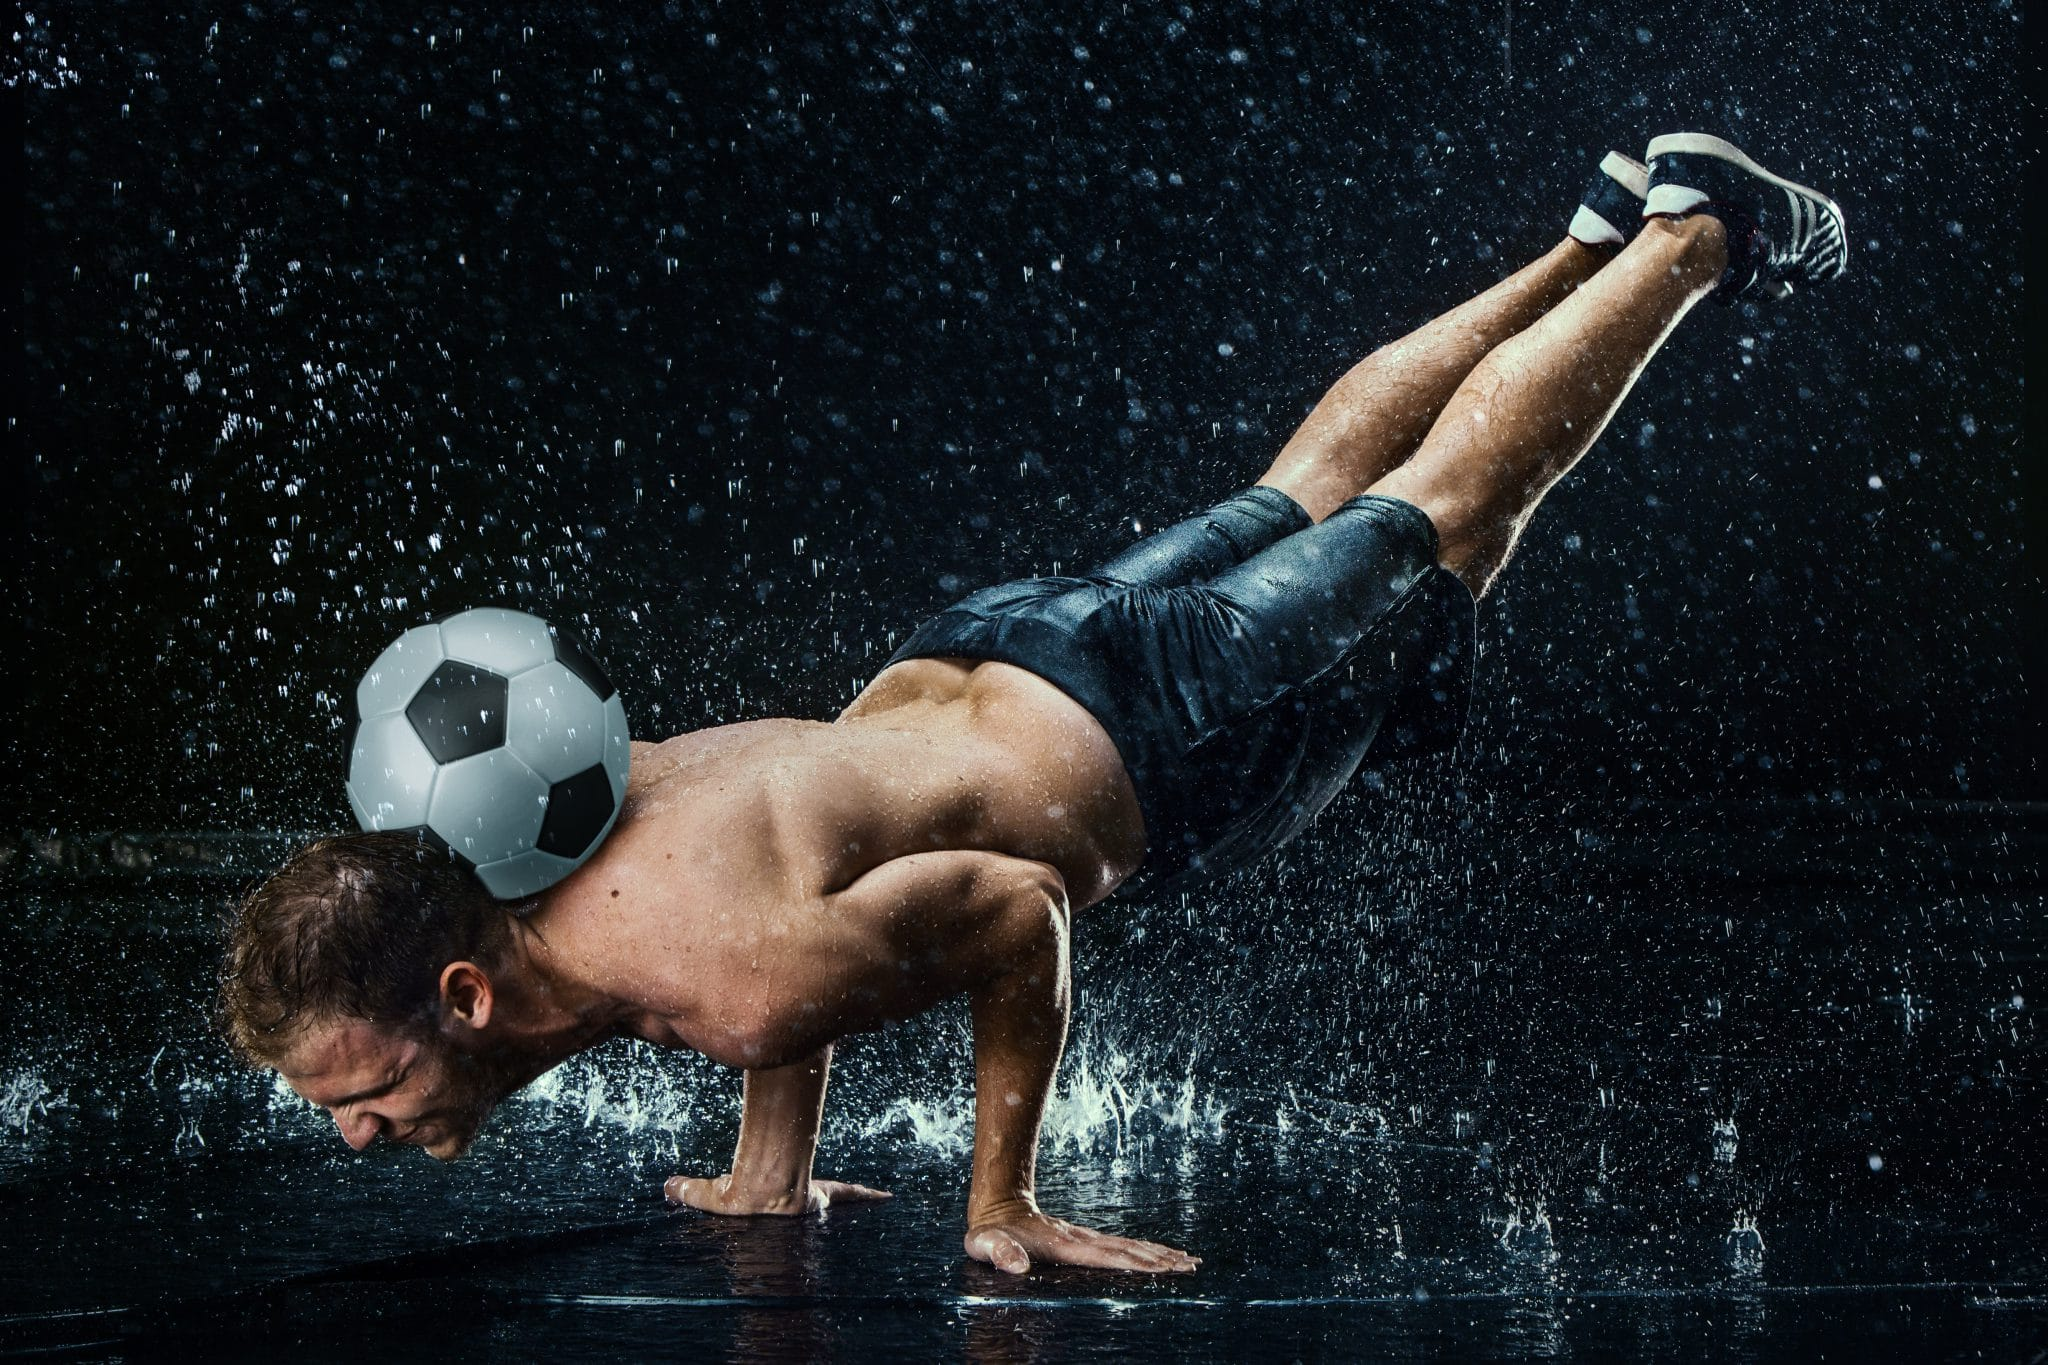 water-drops-around-football-player-PY4WSY3